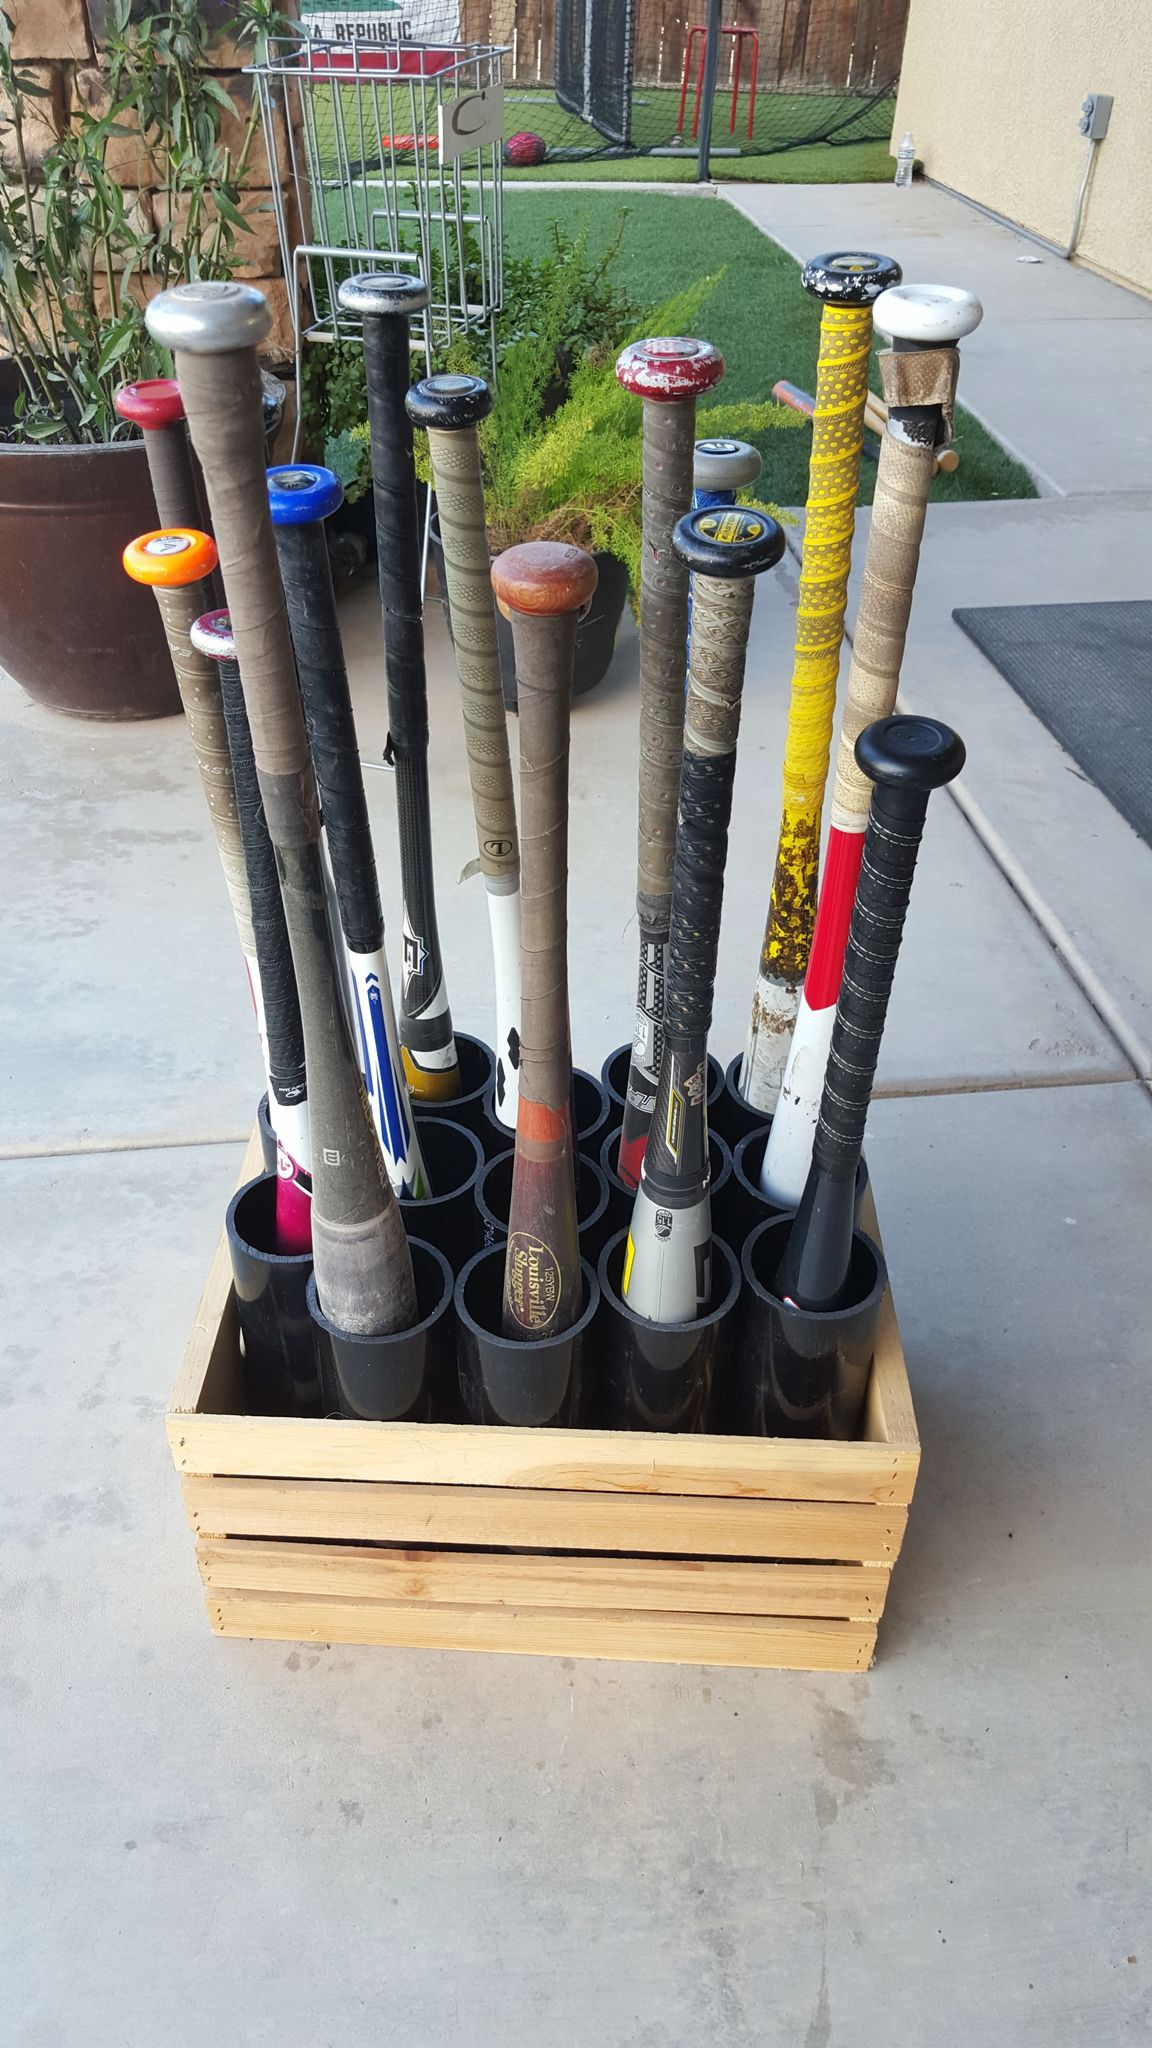 The Finished Product Is A Portable Bat Organizer That Will Fit All Your Baseball Softball Player S Bats Without Being On Floor